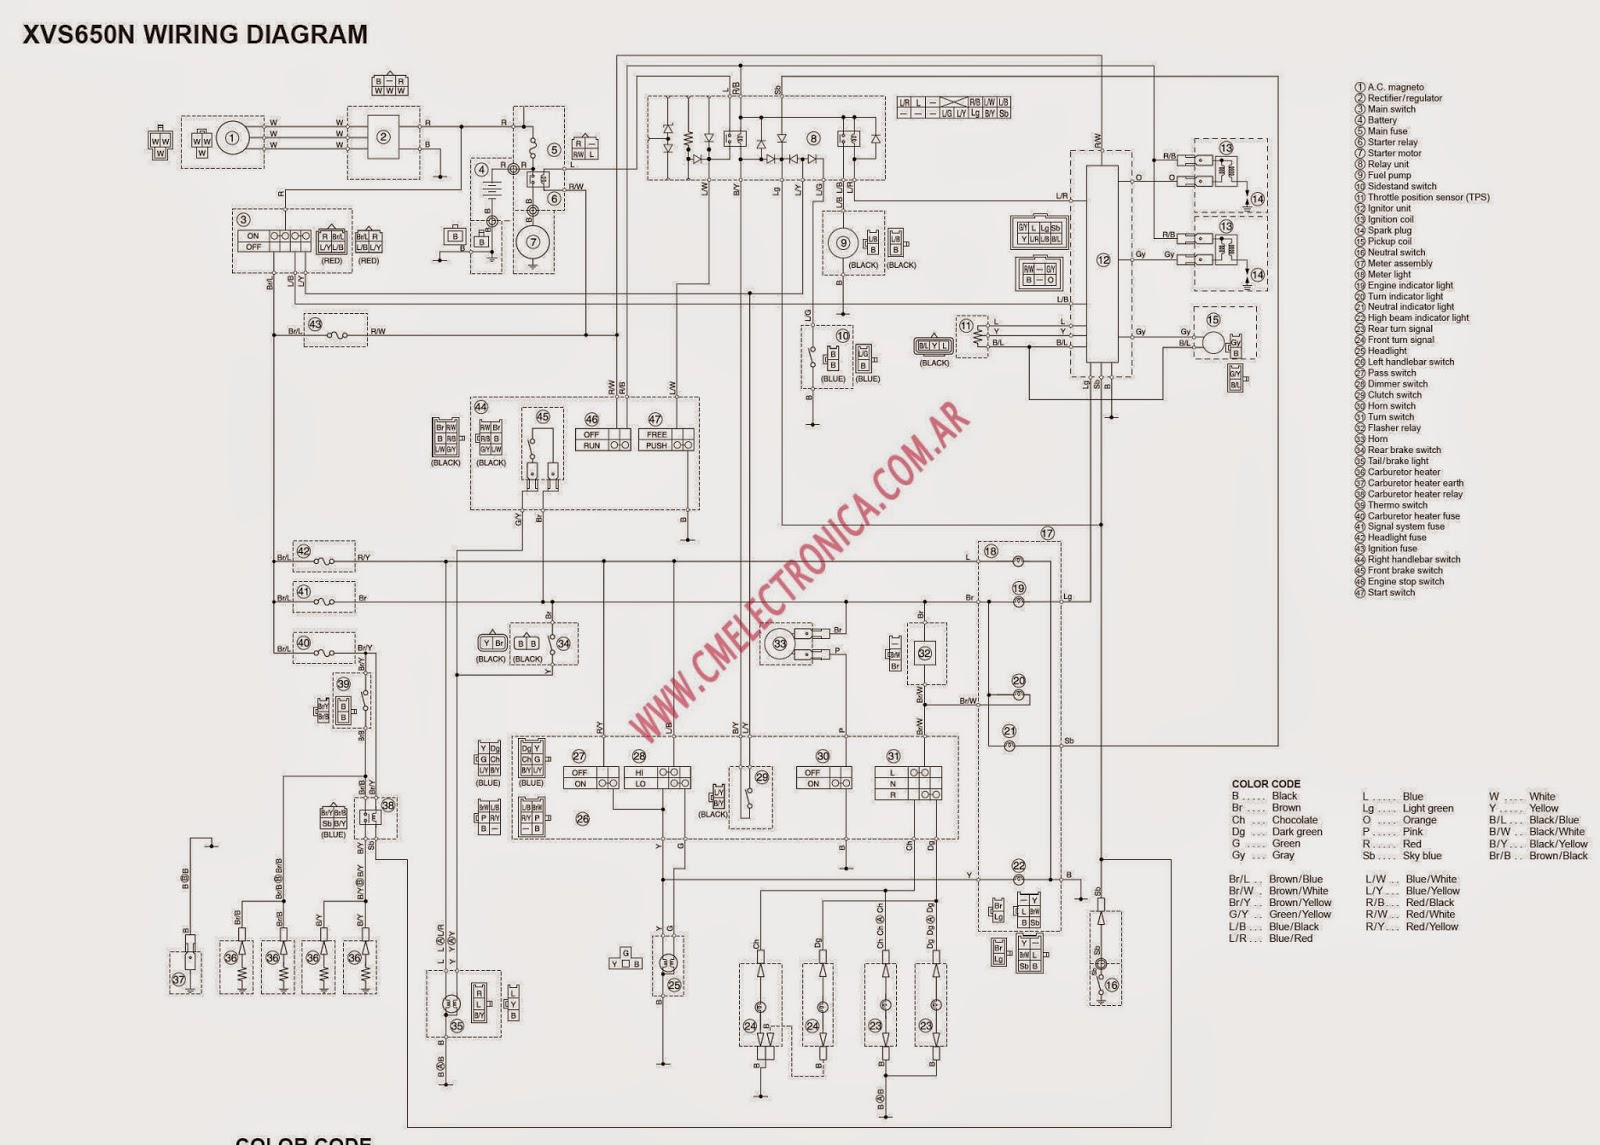 yamaha zuma wiring diagram wiring diagram for you zuma 50cc atv wiring diagram yamaha zuma 125 [ 1600 x 1145 Pixel ]